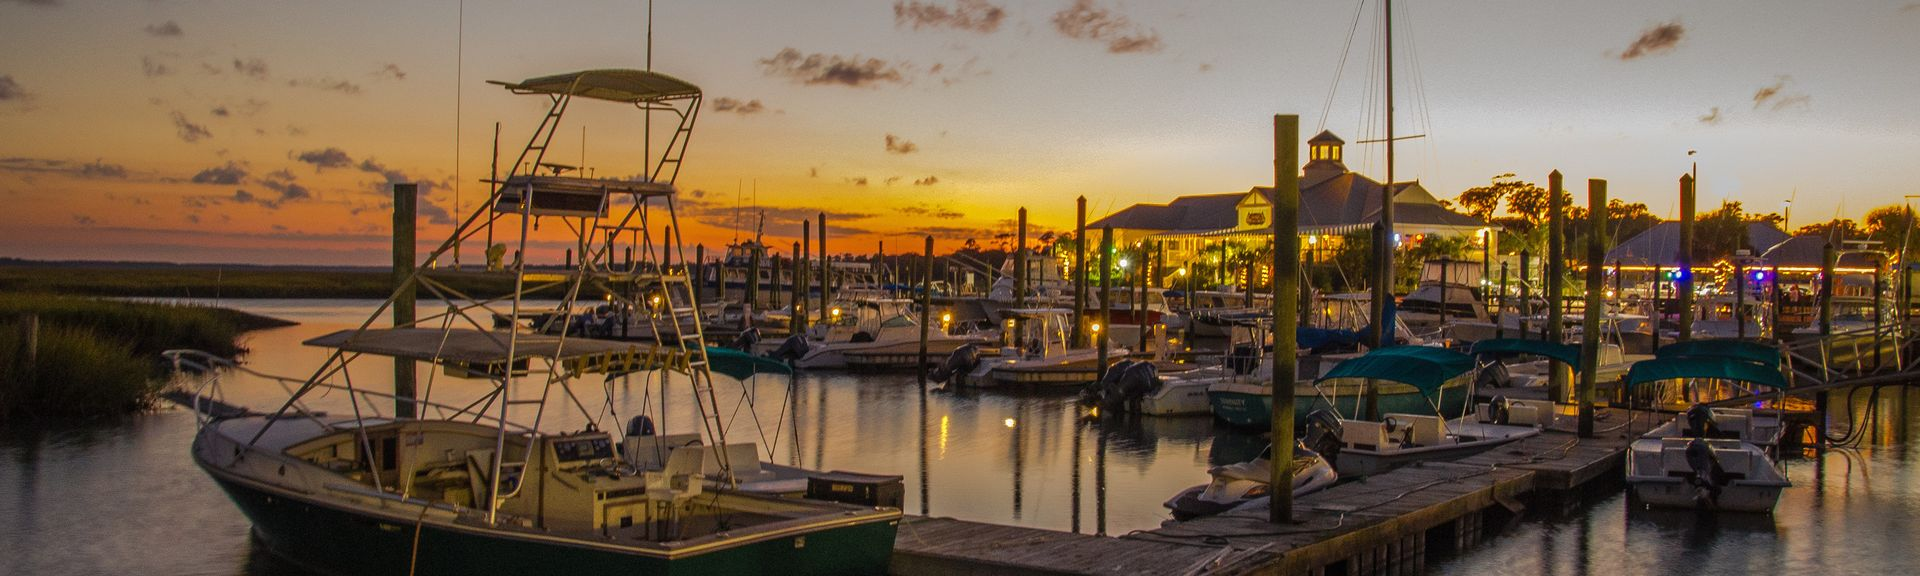 Murrells Inlet, South Carolina, United States of America